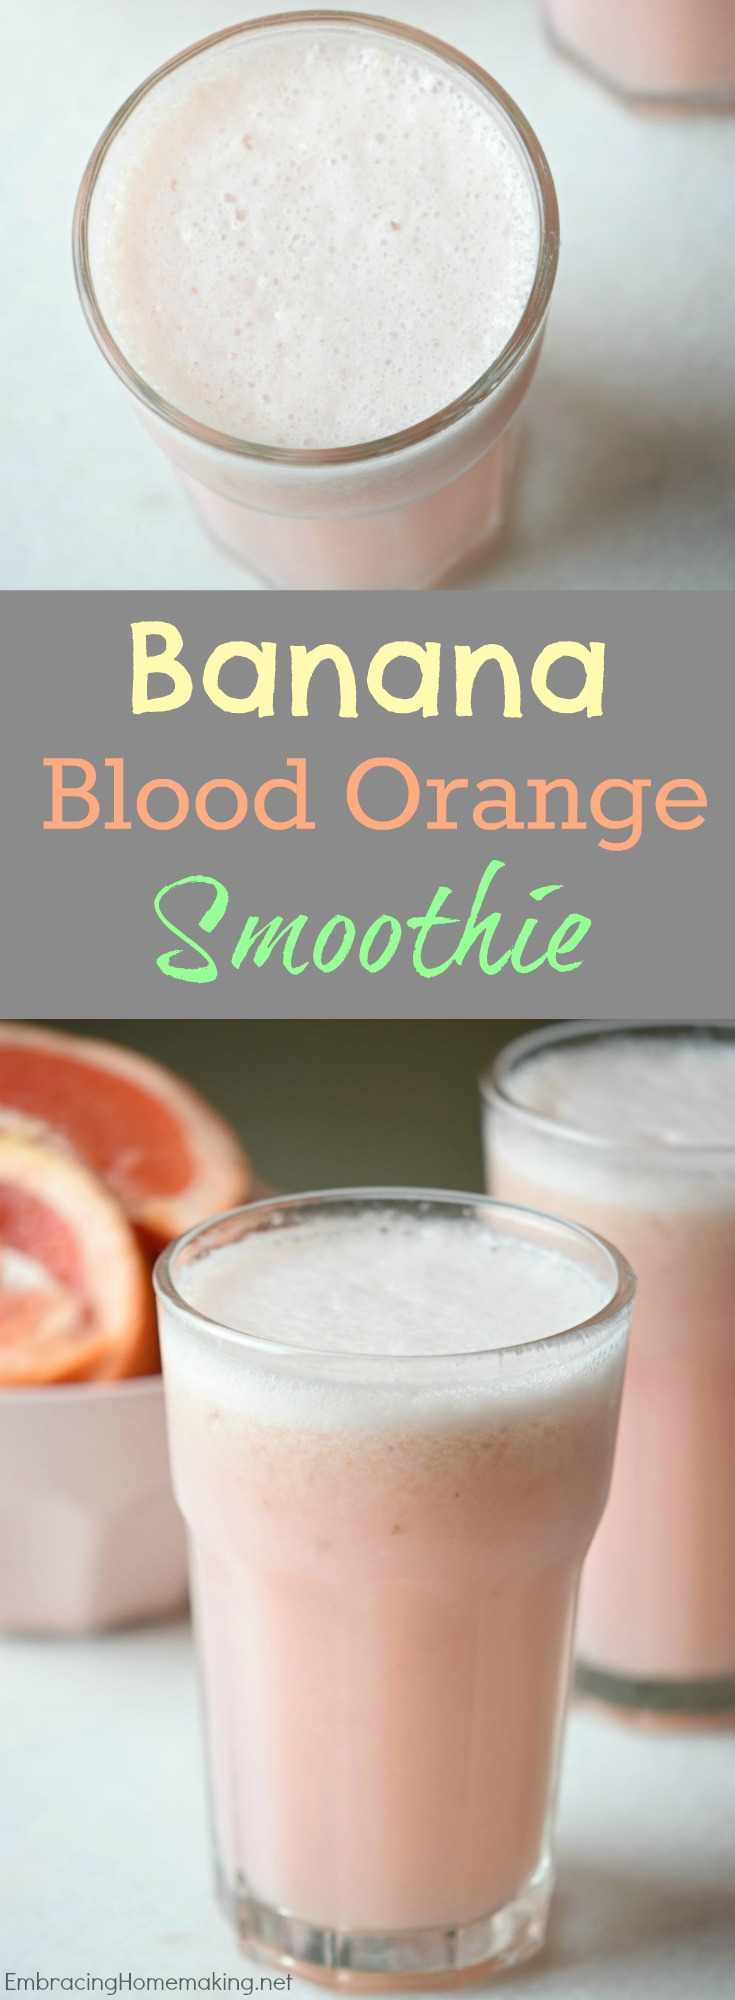 Banana Blood Orange Smoothie Recipe